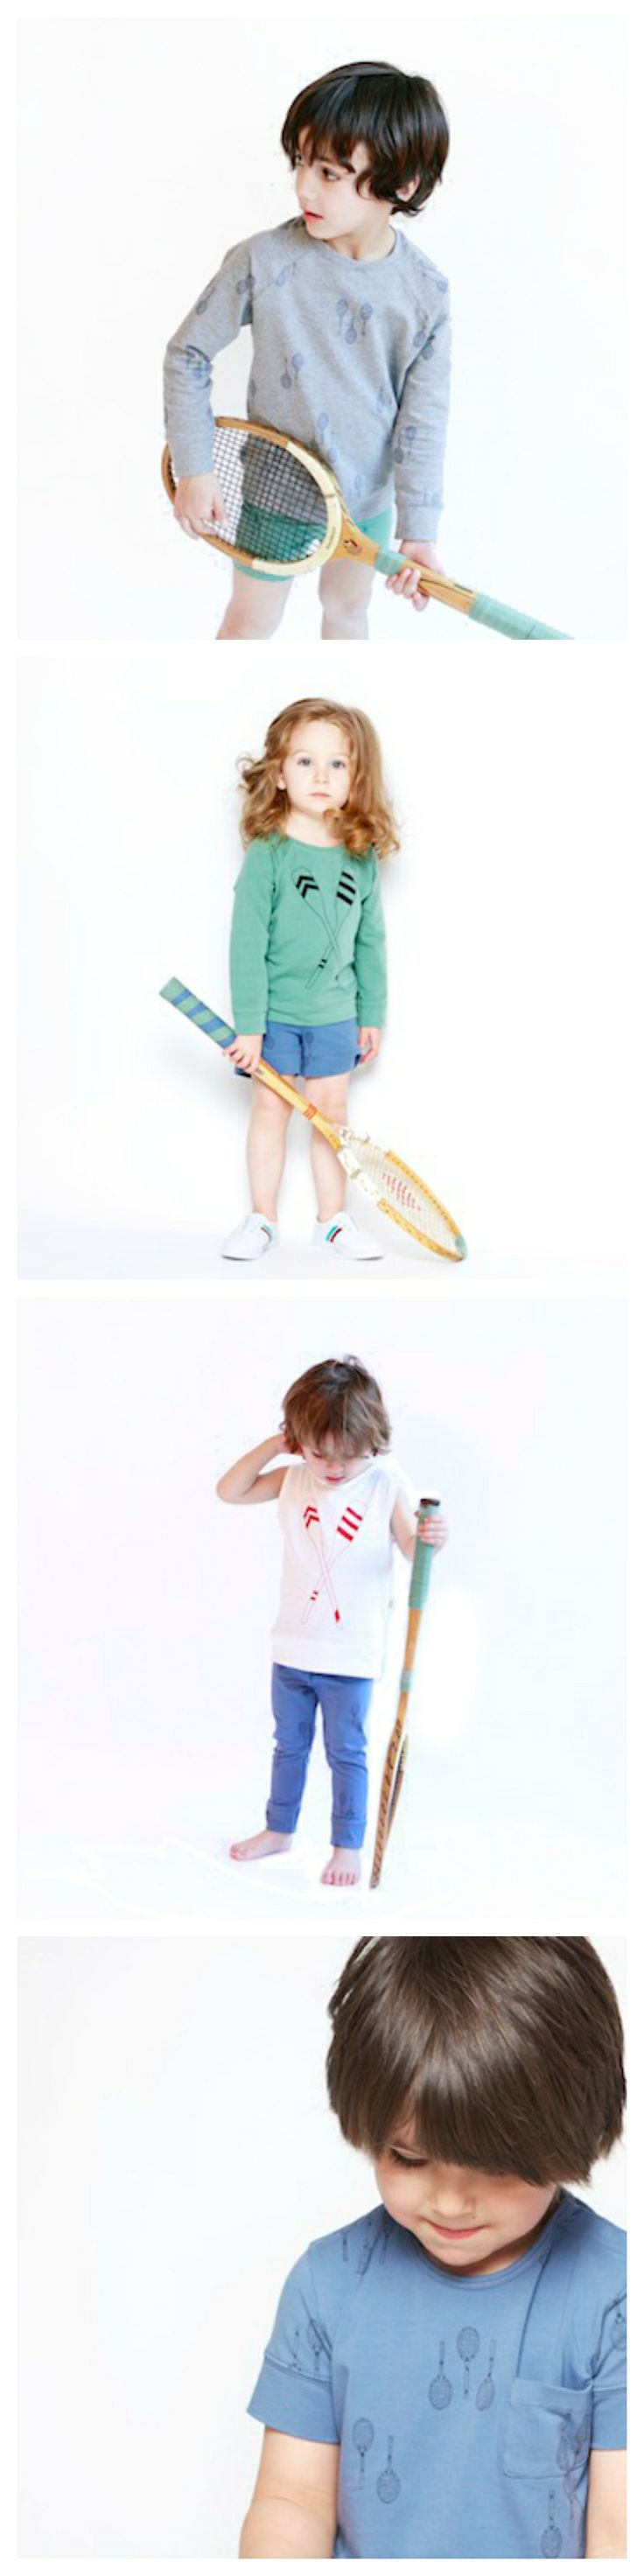 """Our new """"Let's Play"""" collection available at www.lotiekids.com Hope you'll ike it!"""